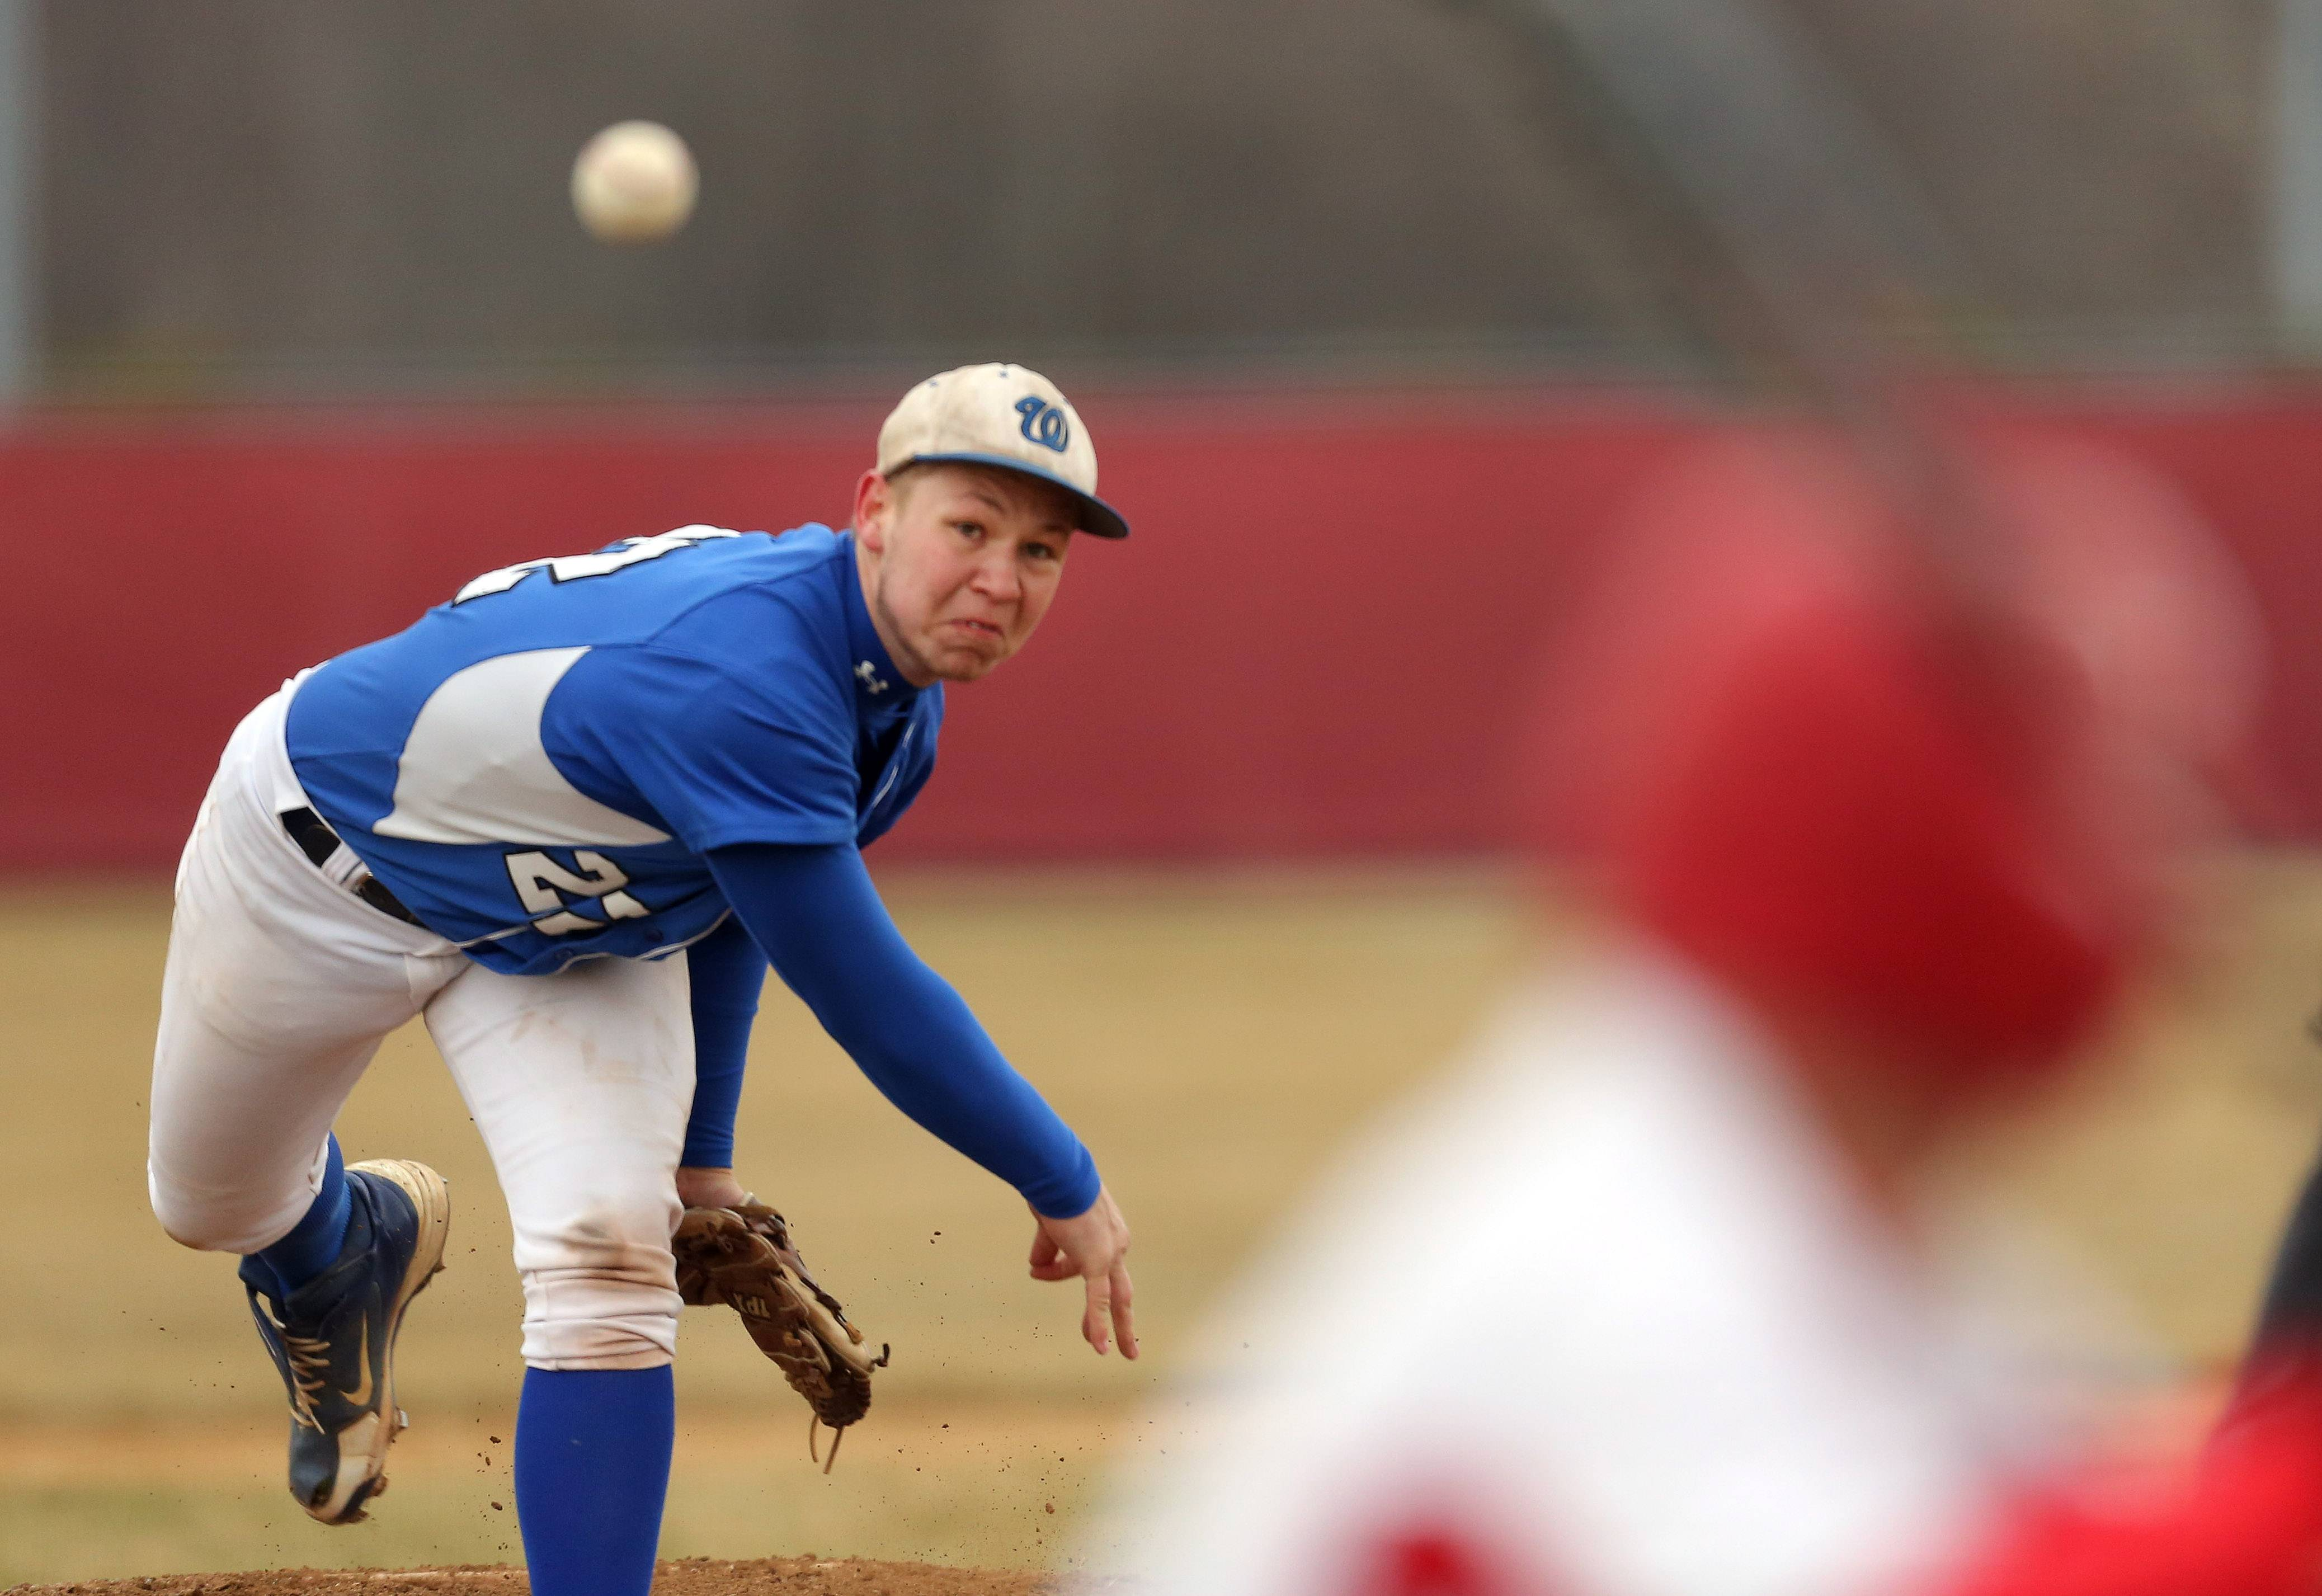 Wheeling pitcher Angelo DeBlasio delivers on Wednesday at Mundelein.